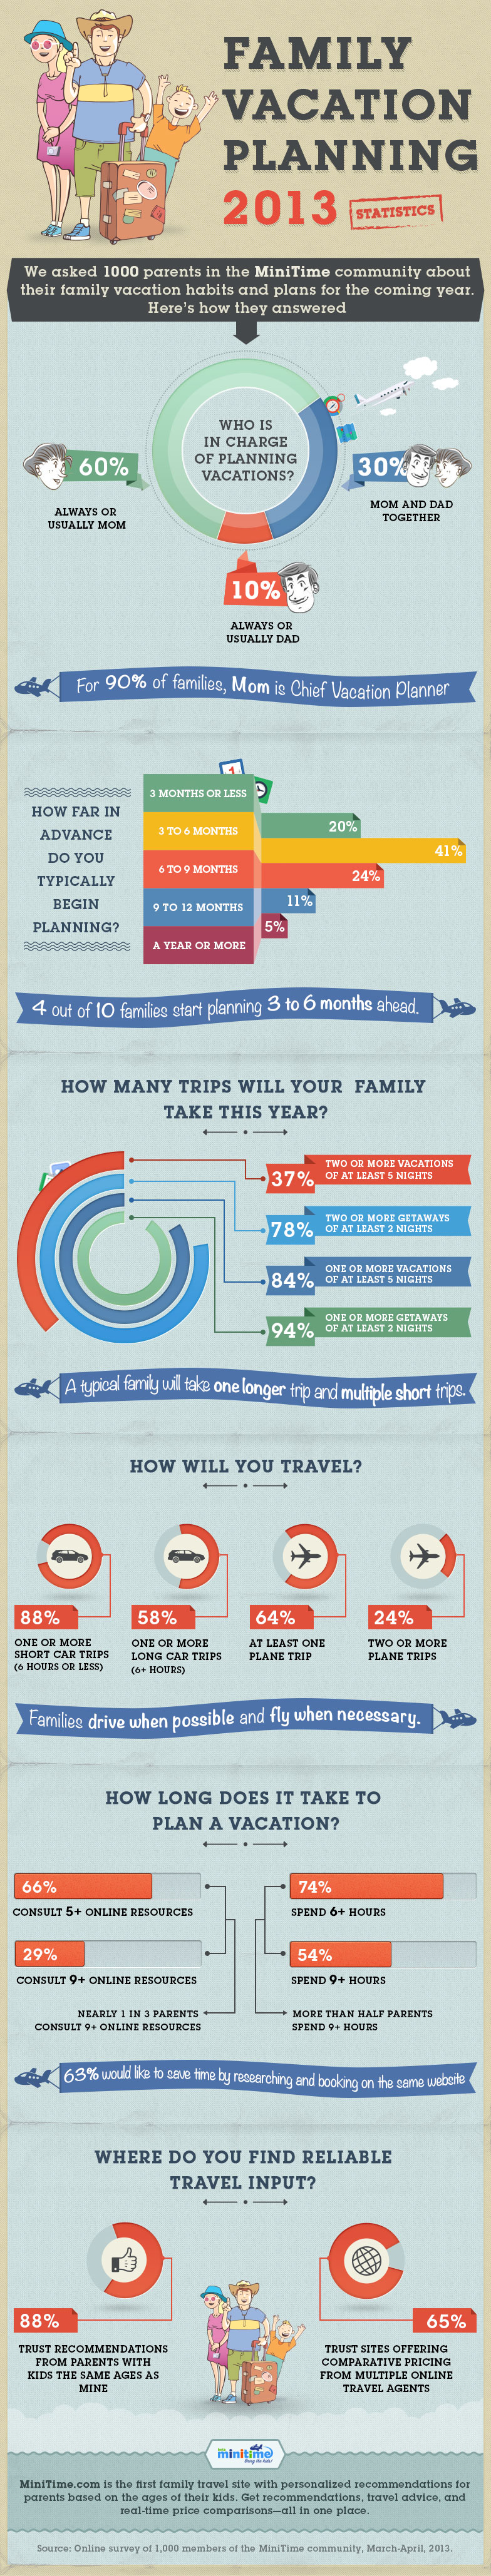 Vacation Planning and Travel Statistics